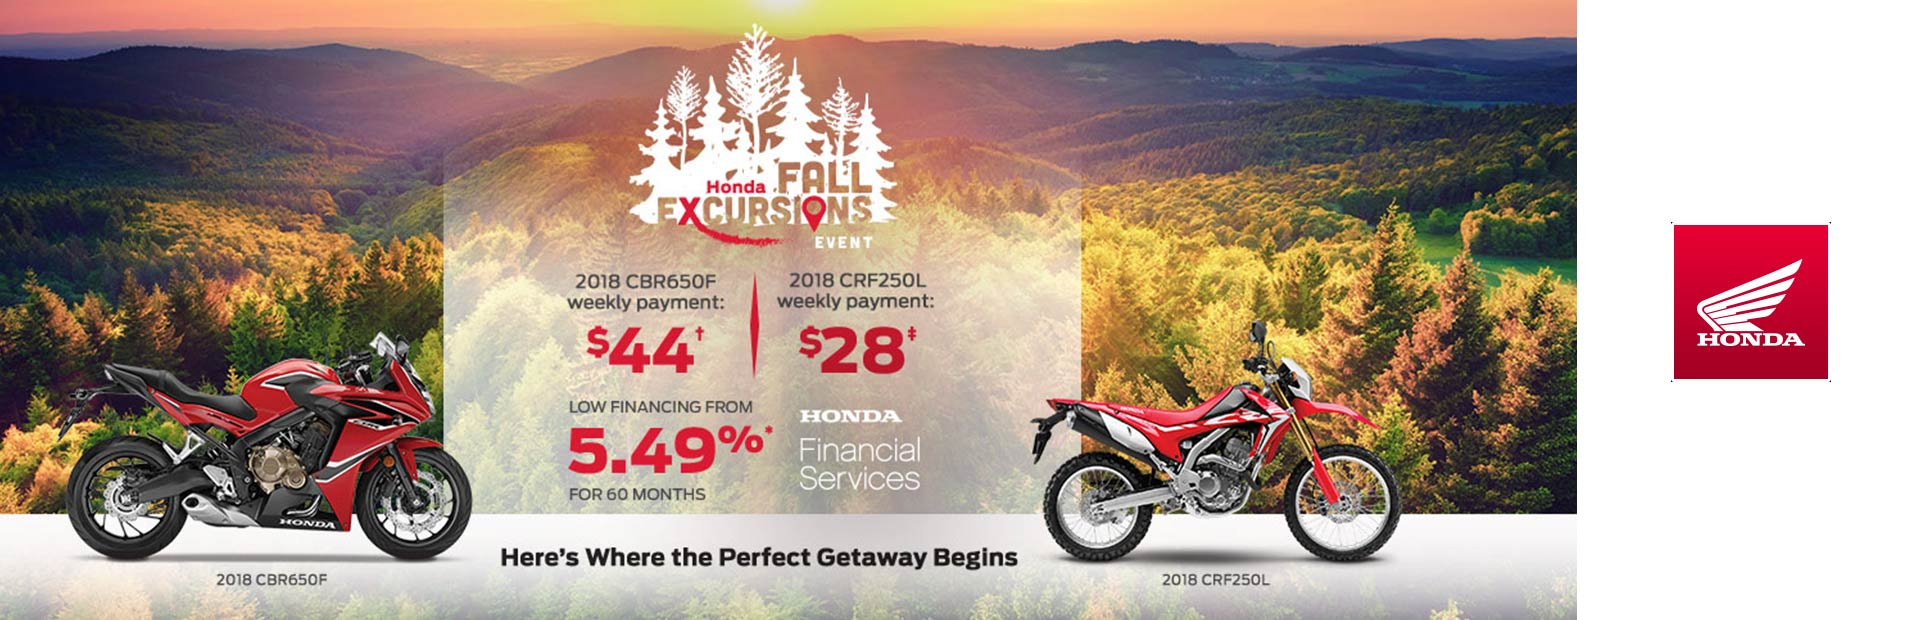 Honda: Honda Fall Excursions Event